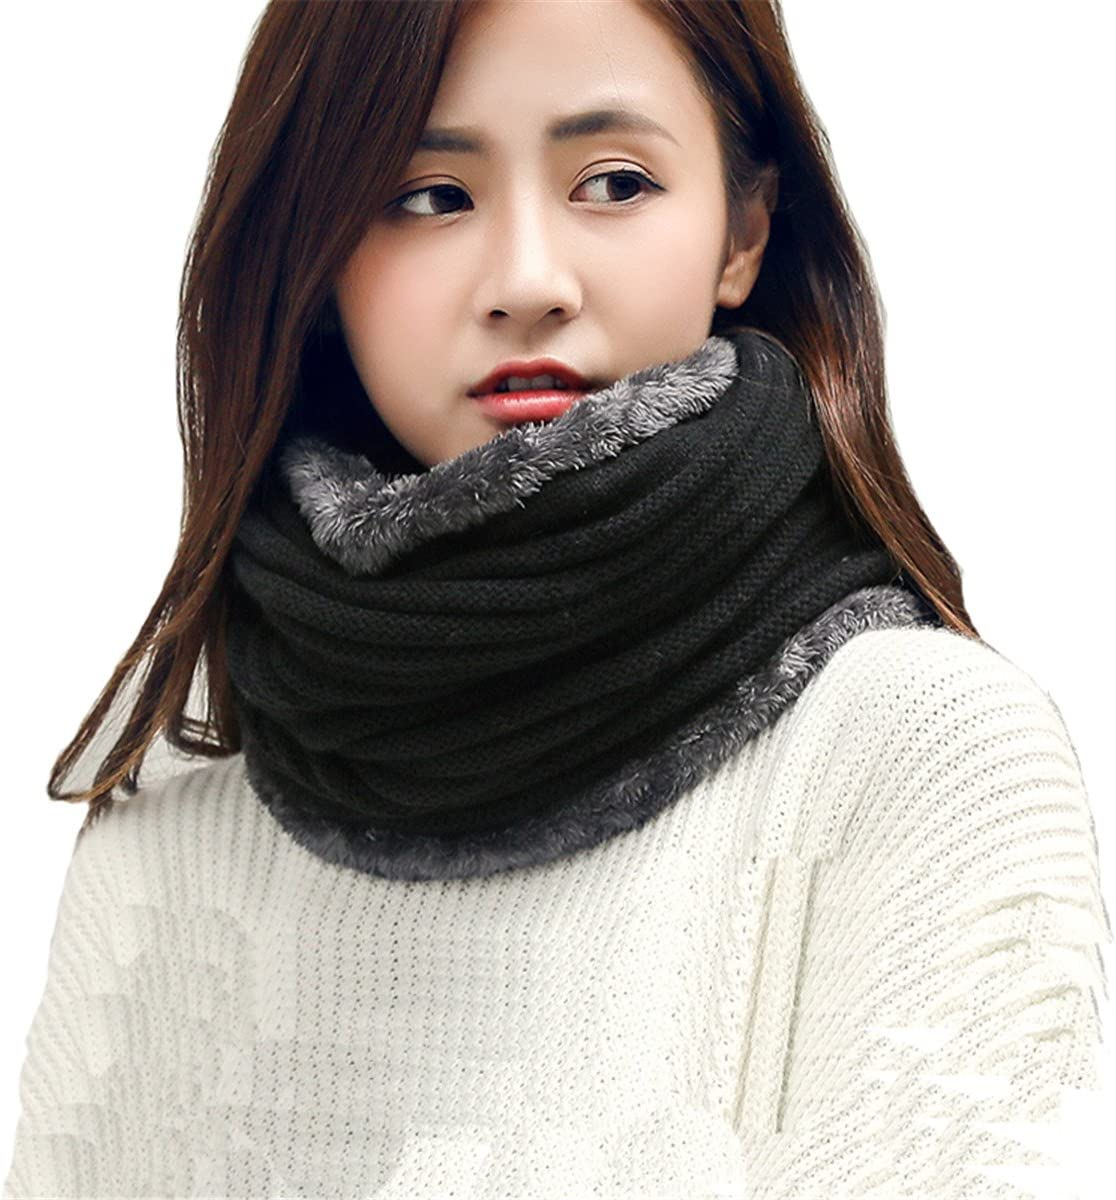 Leories Winter Neck Warmer Fleece Lined Infinity Scarf Soft Thick Circle Loop Scarves